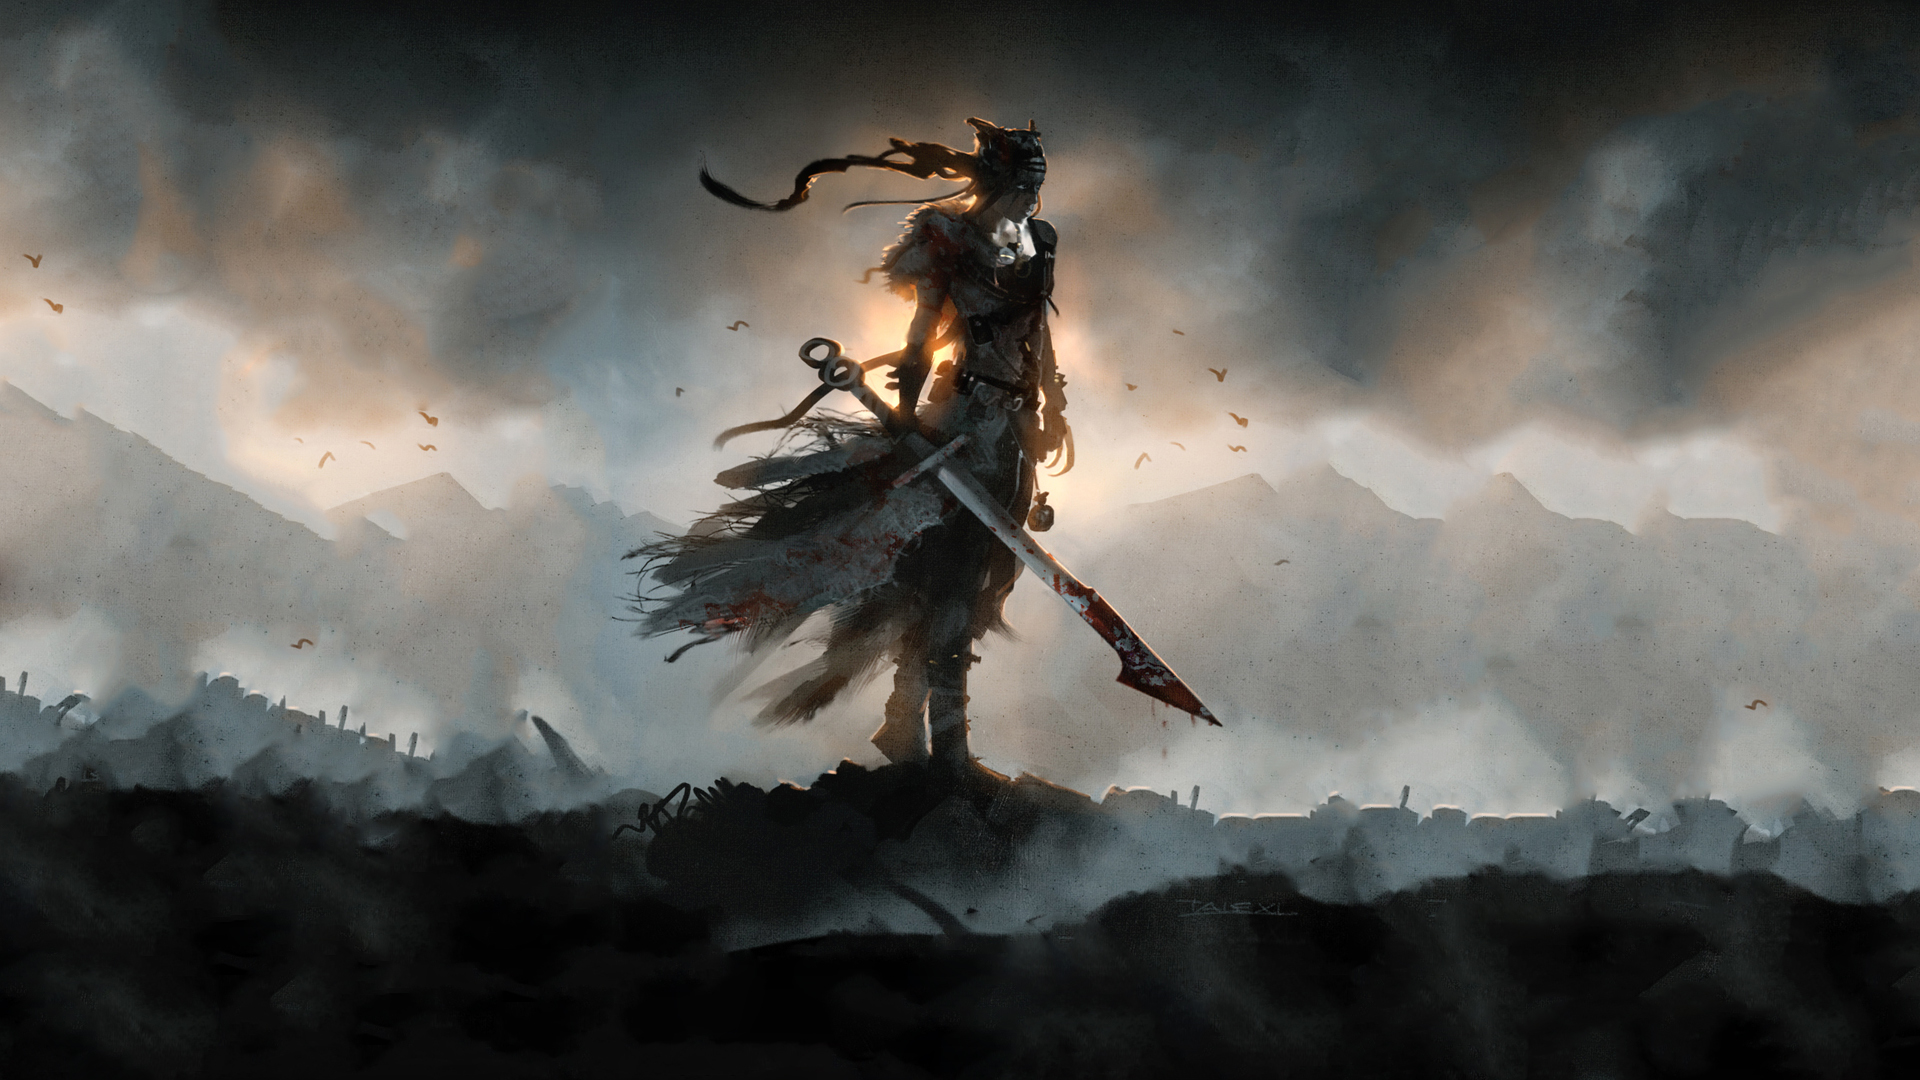 Amazing hellblade hd images wallpapers all hd wallpapers for Amazing wallpaper for tab